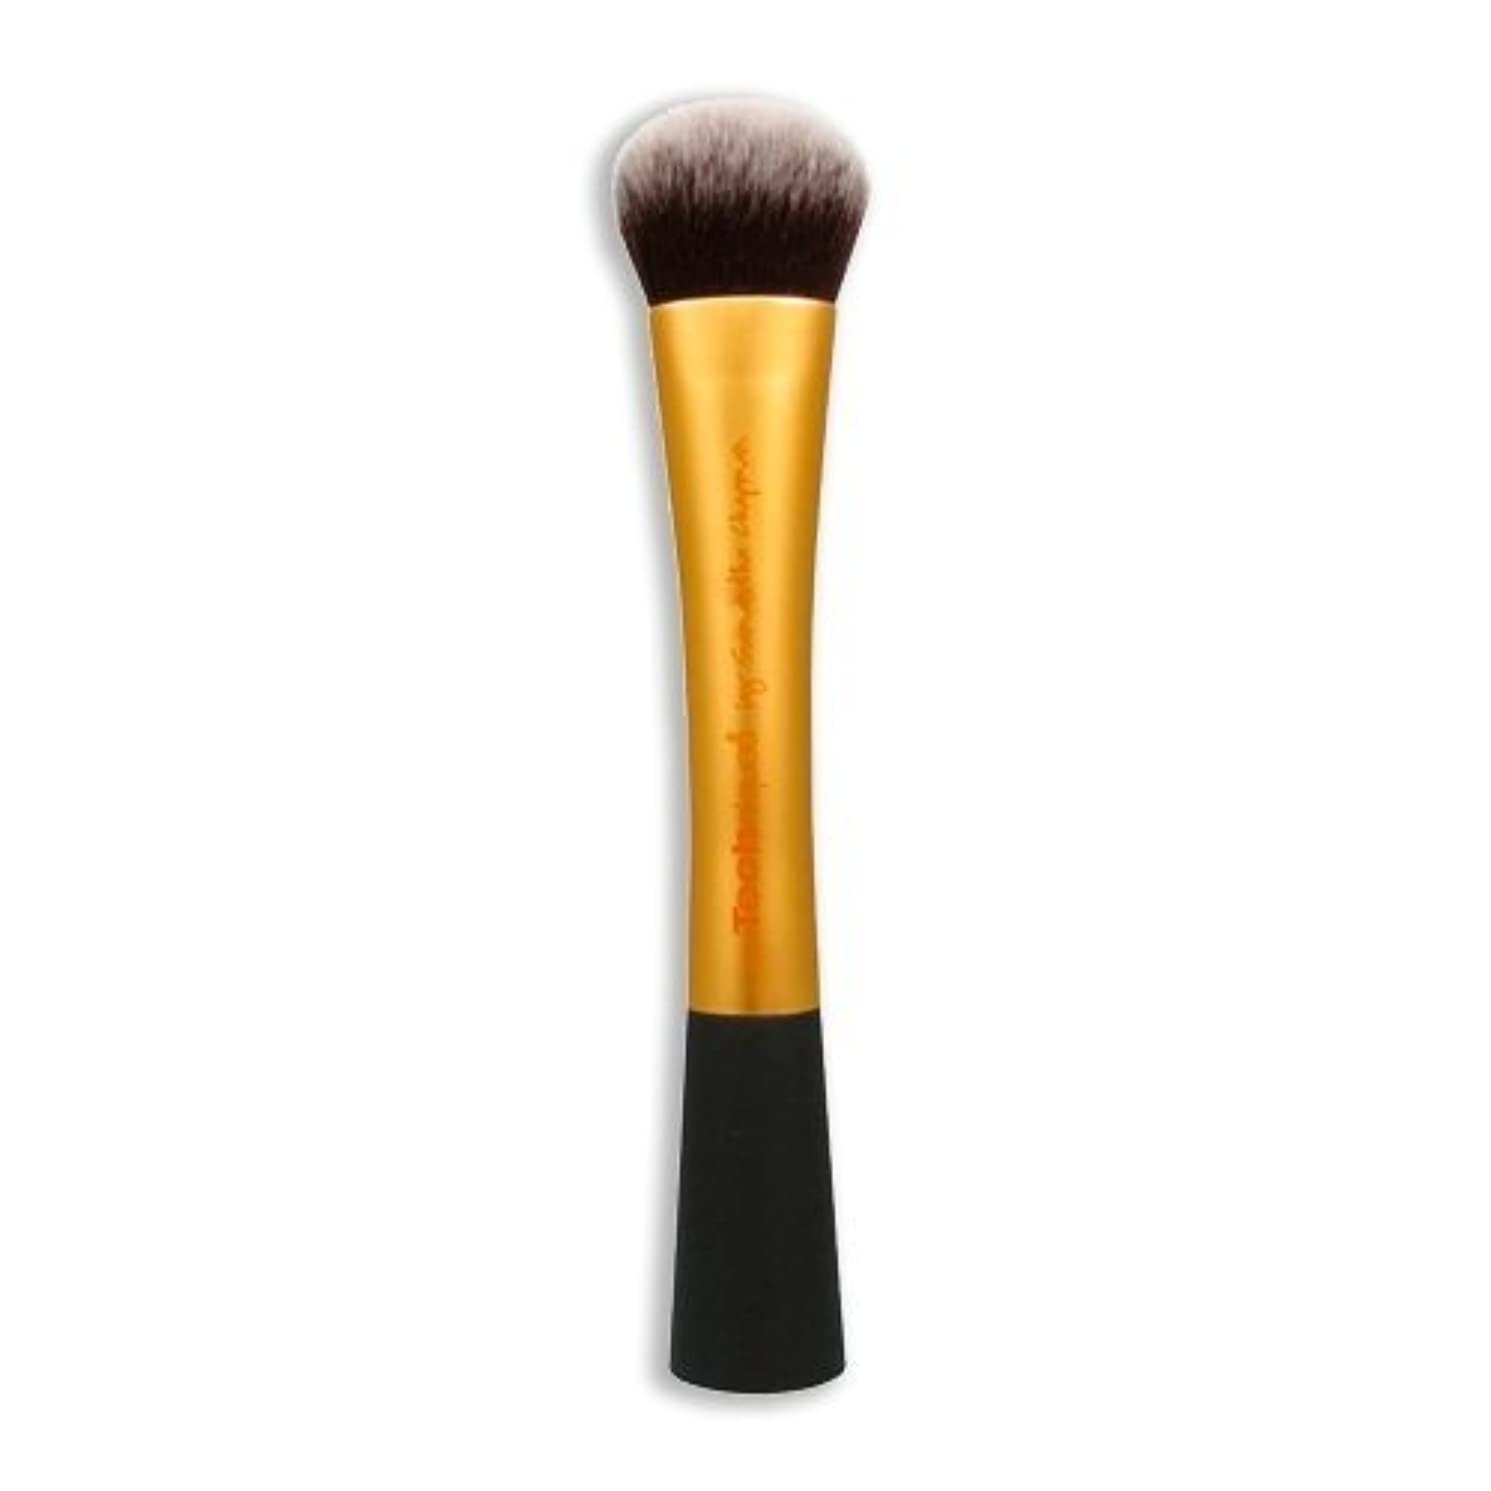 ランク立ち向かう宇宙のReal Techniques Expert Face Brush - Expert Face Brush (並行輸入品)